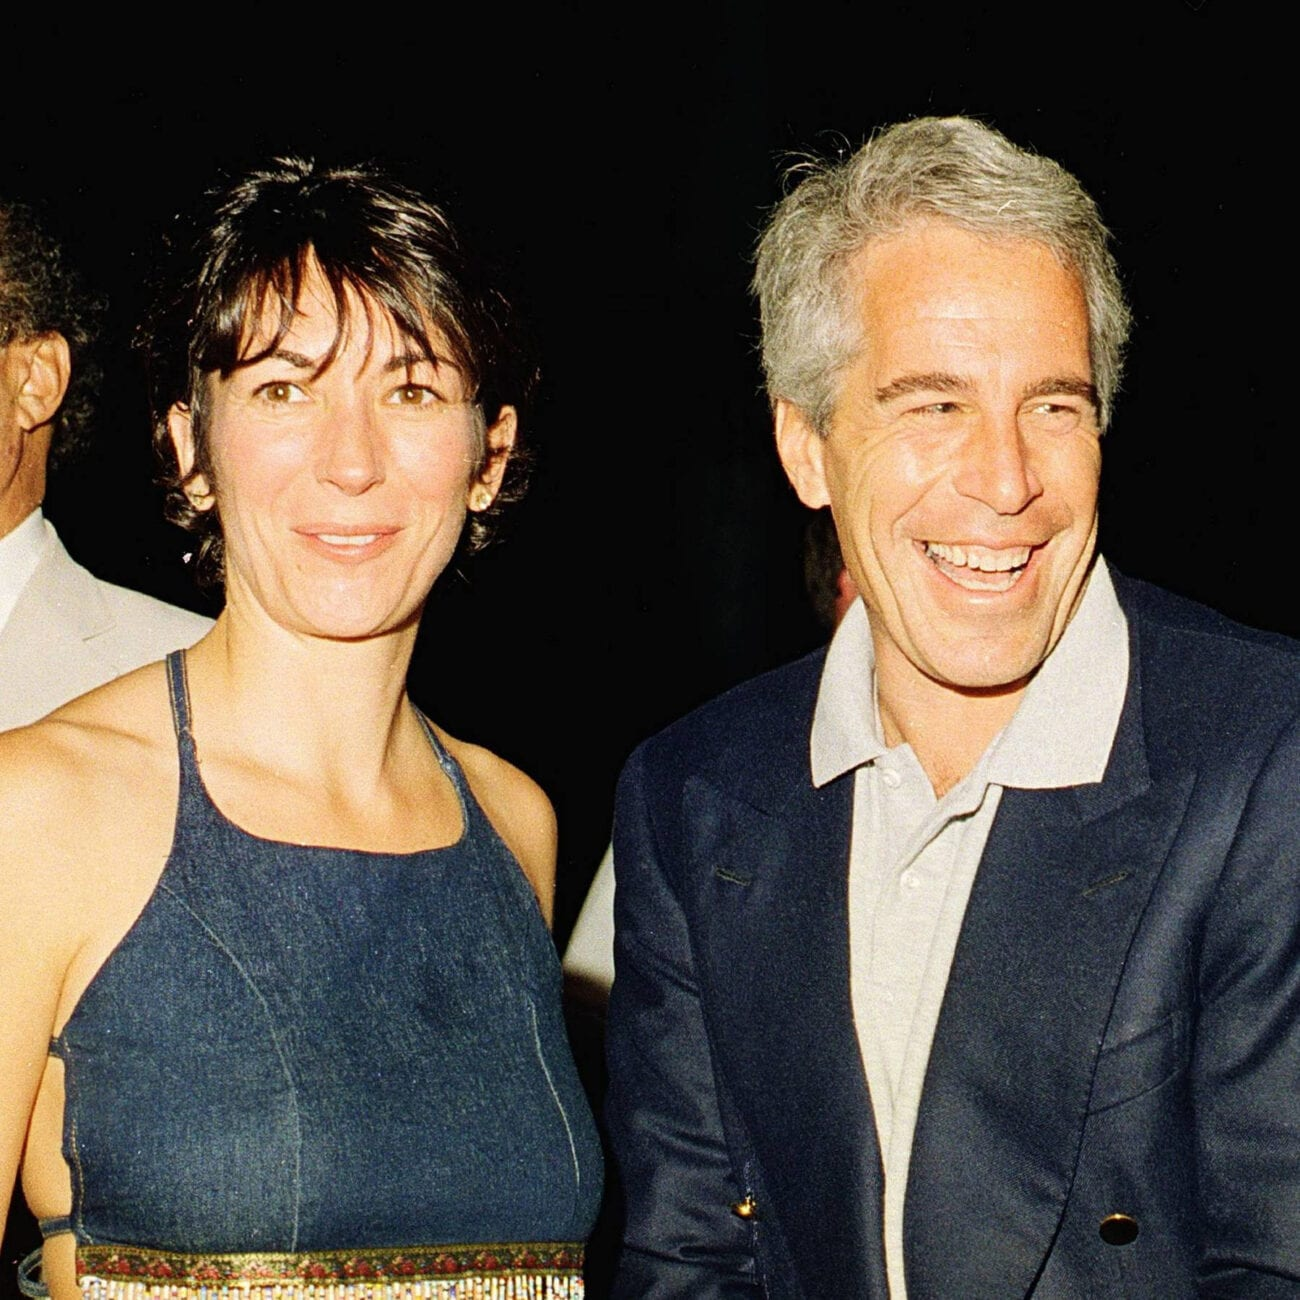 A very short answer: Ghislaine Maxwell was an heiress, inheriting most of her net worth. Here's everything you need to know.